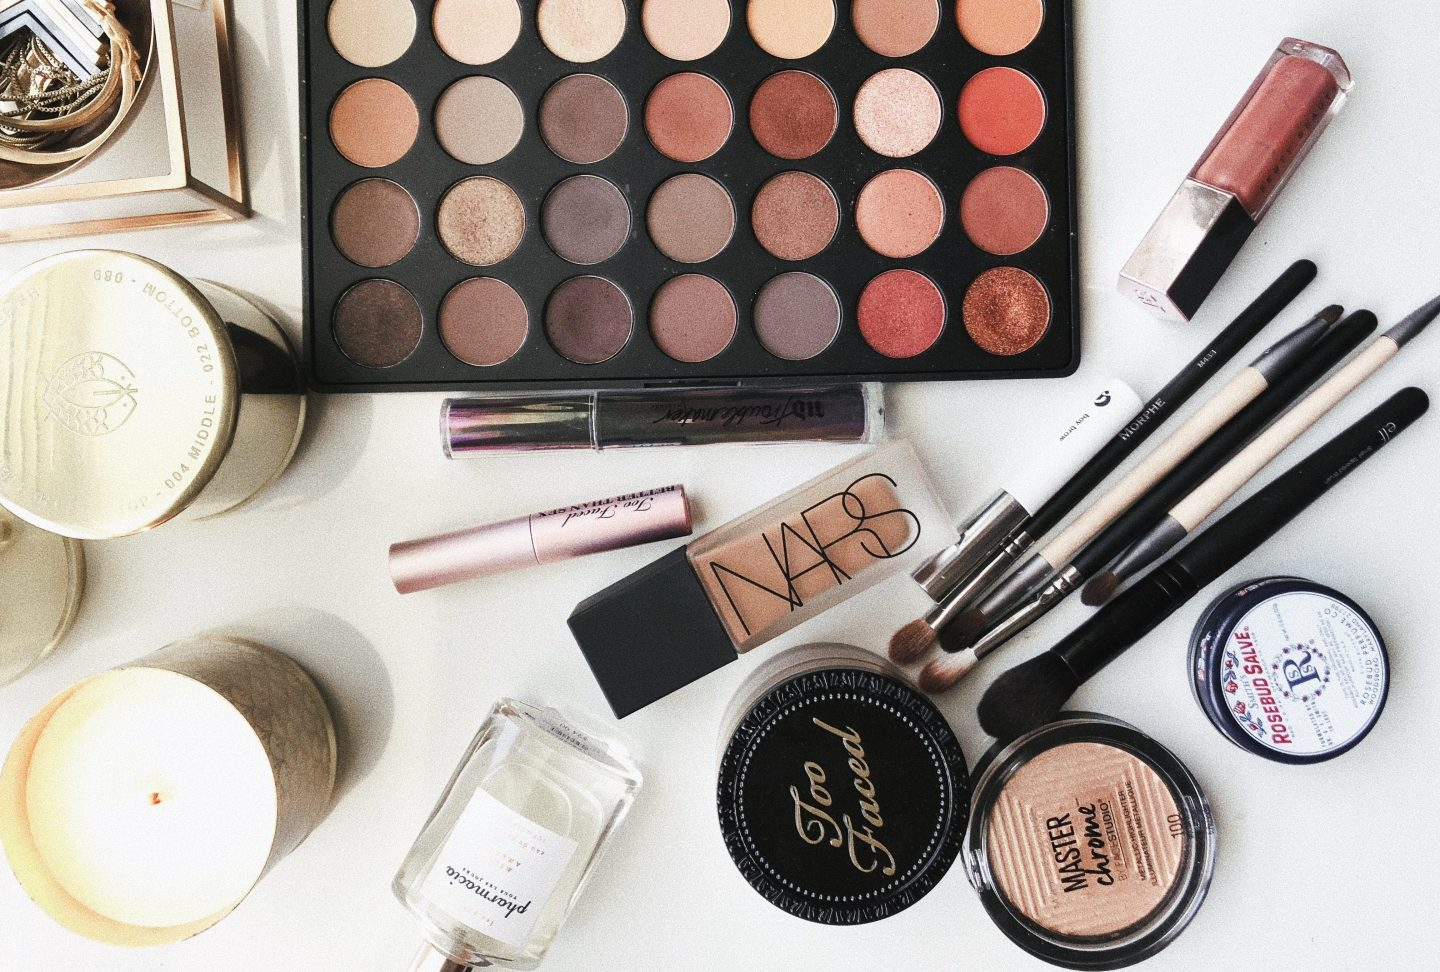 assorted makeup and skincare products on a white background